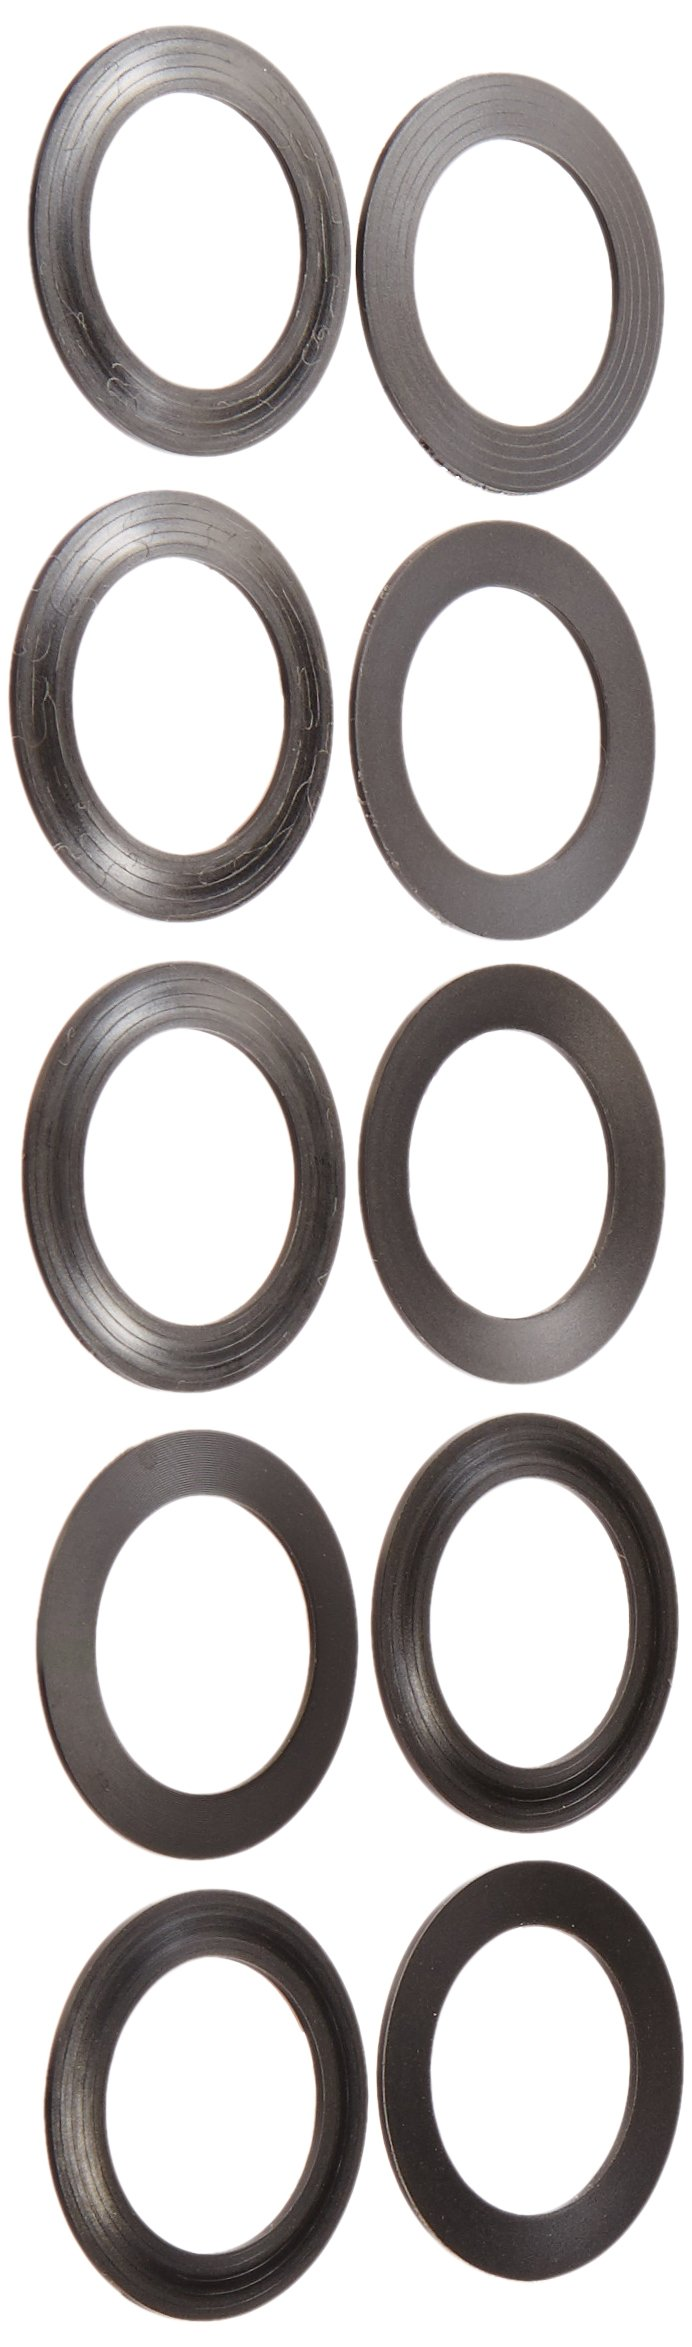 Wheels Manufacturing BB 24mm Spindle Shim Spacers (10-Pack), 1.0mm by Wheels Manufacturing